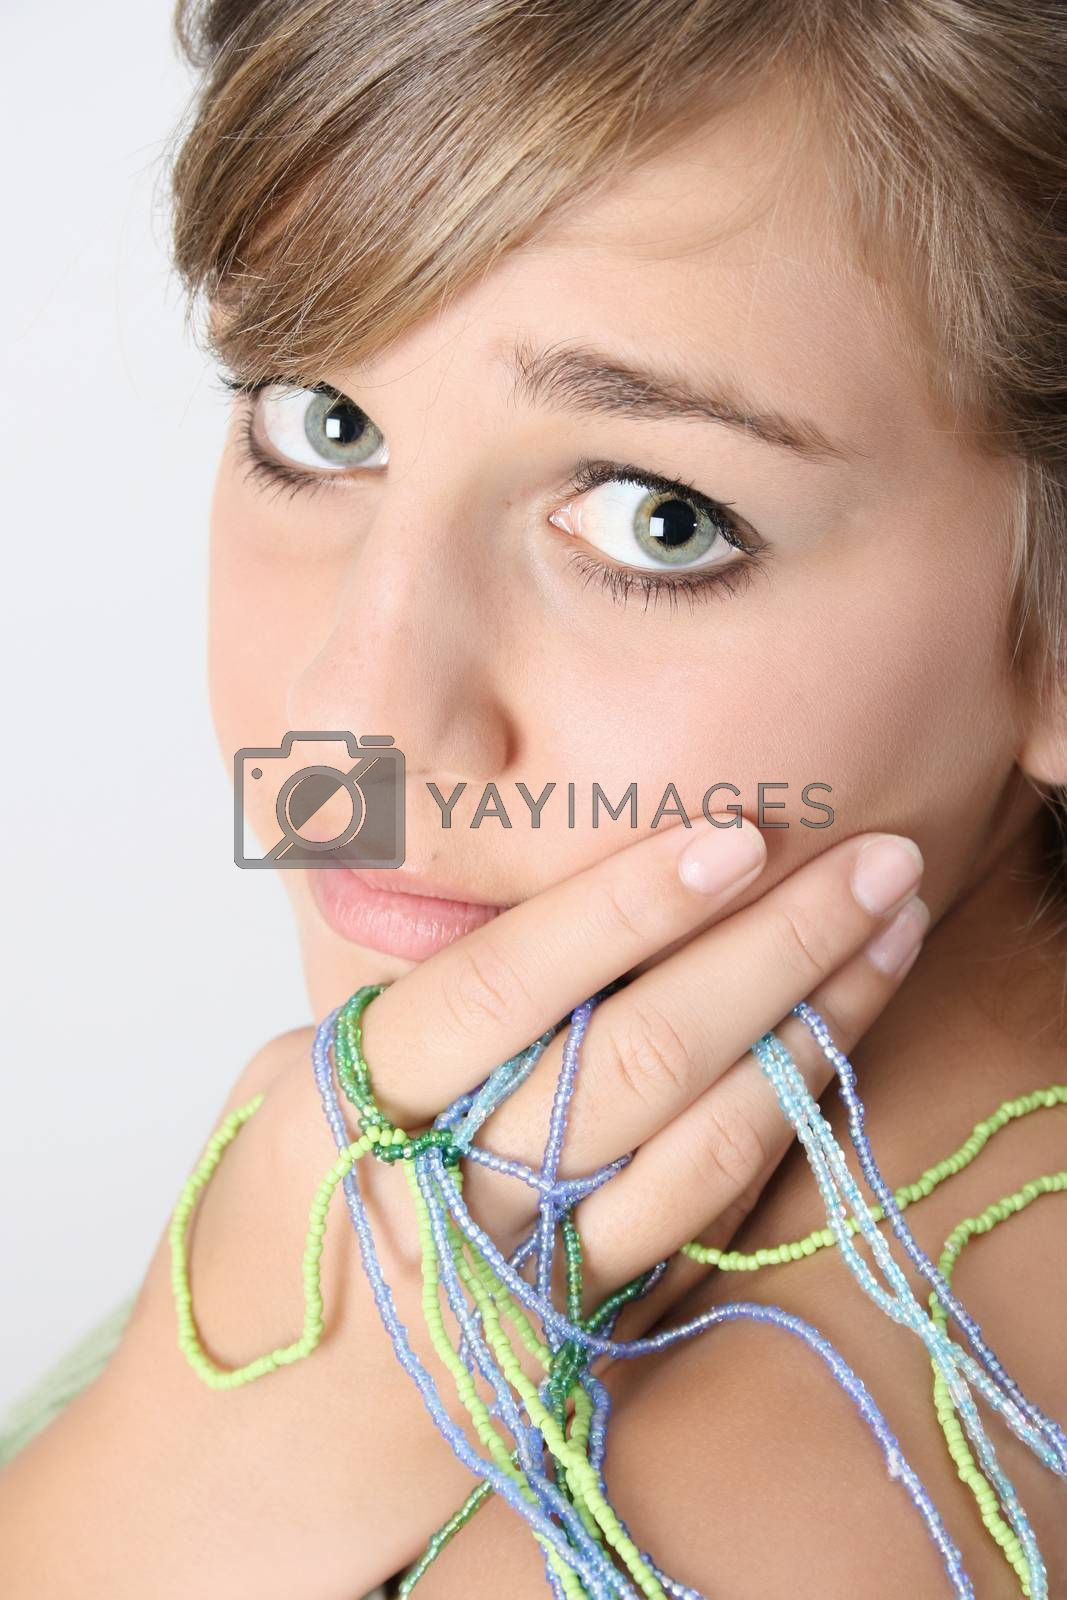 Innocent looking teenager with small beaded strings